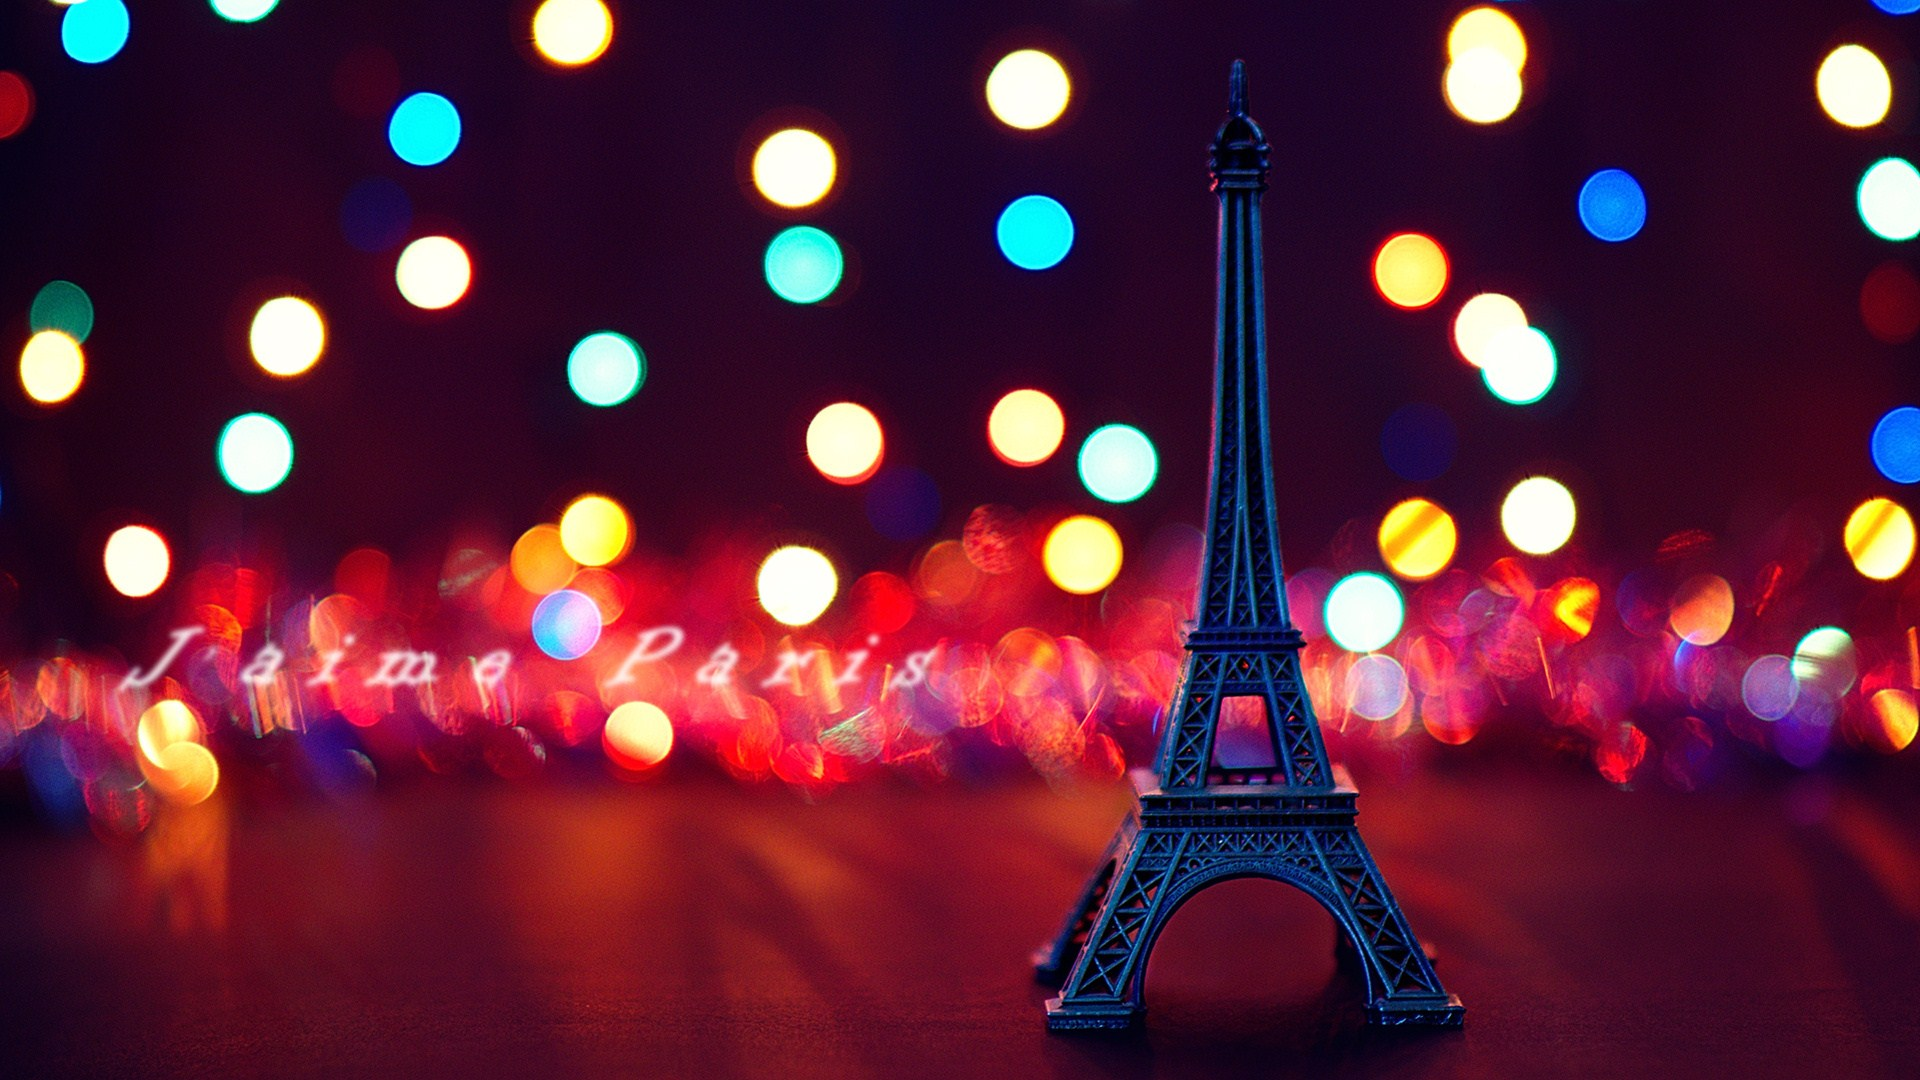 Colorful Eiffel Tower Wallpaper